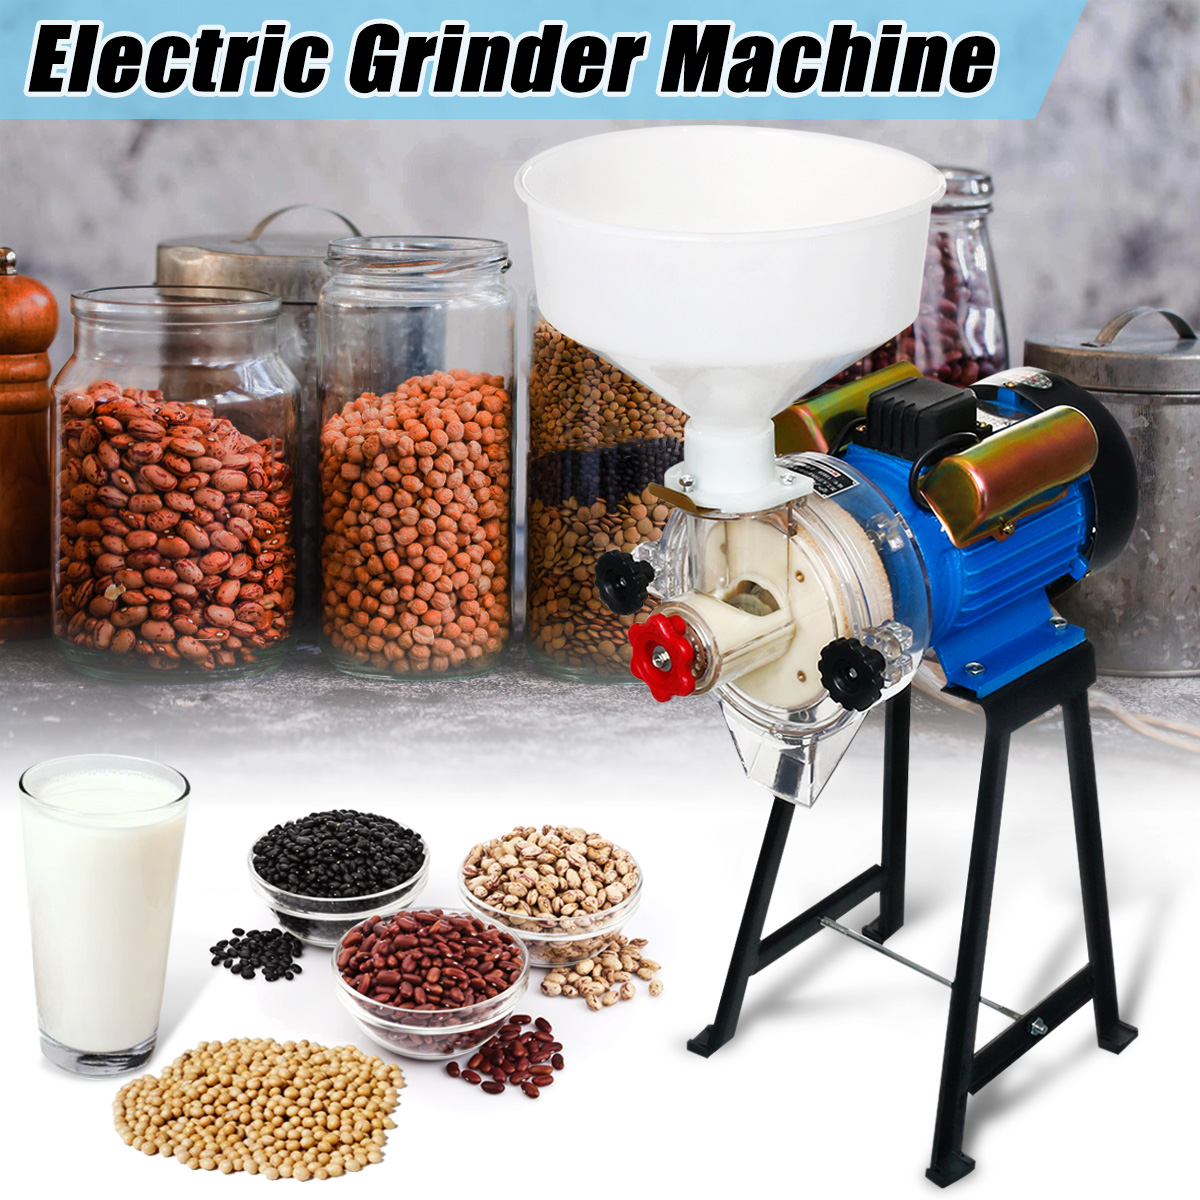 220V 2 2KW Electric Grinder Machine Rice Corn Grain Coffee Wheat Feed Mill  Wet Dry Cereals Grinder